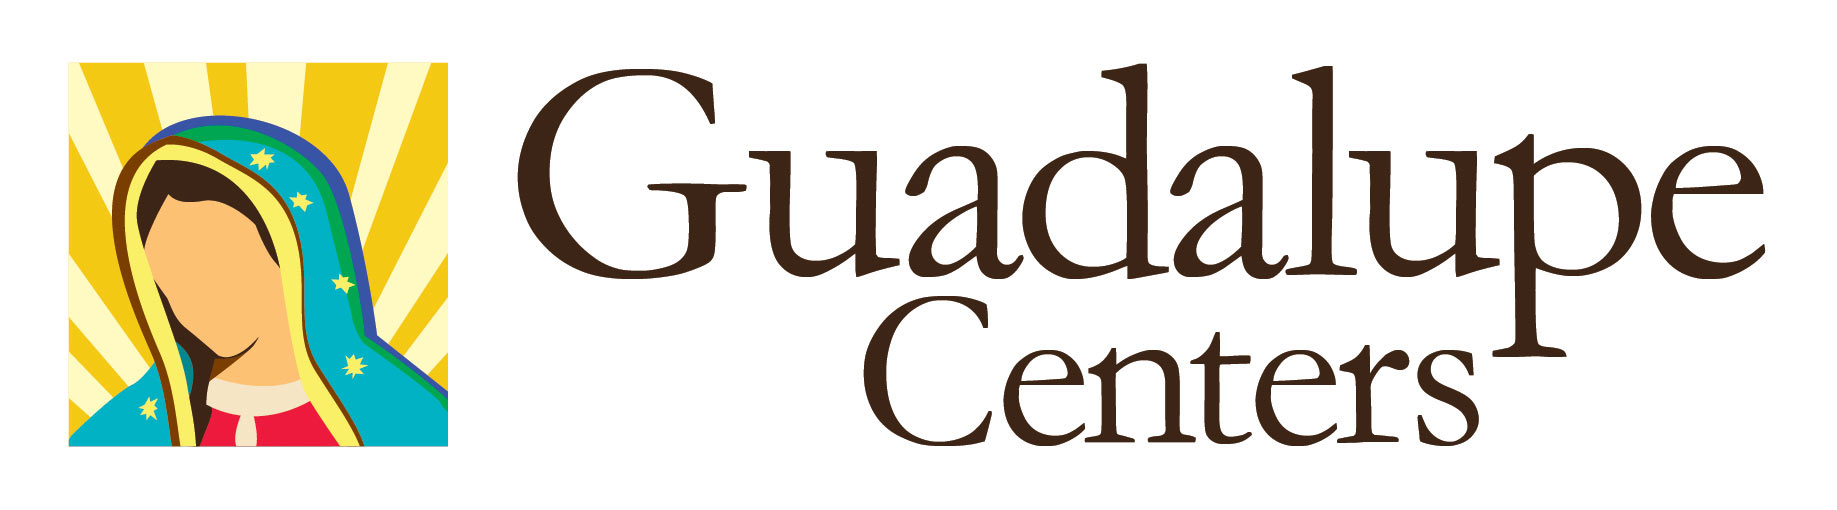 logo-guadalupe-centers